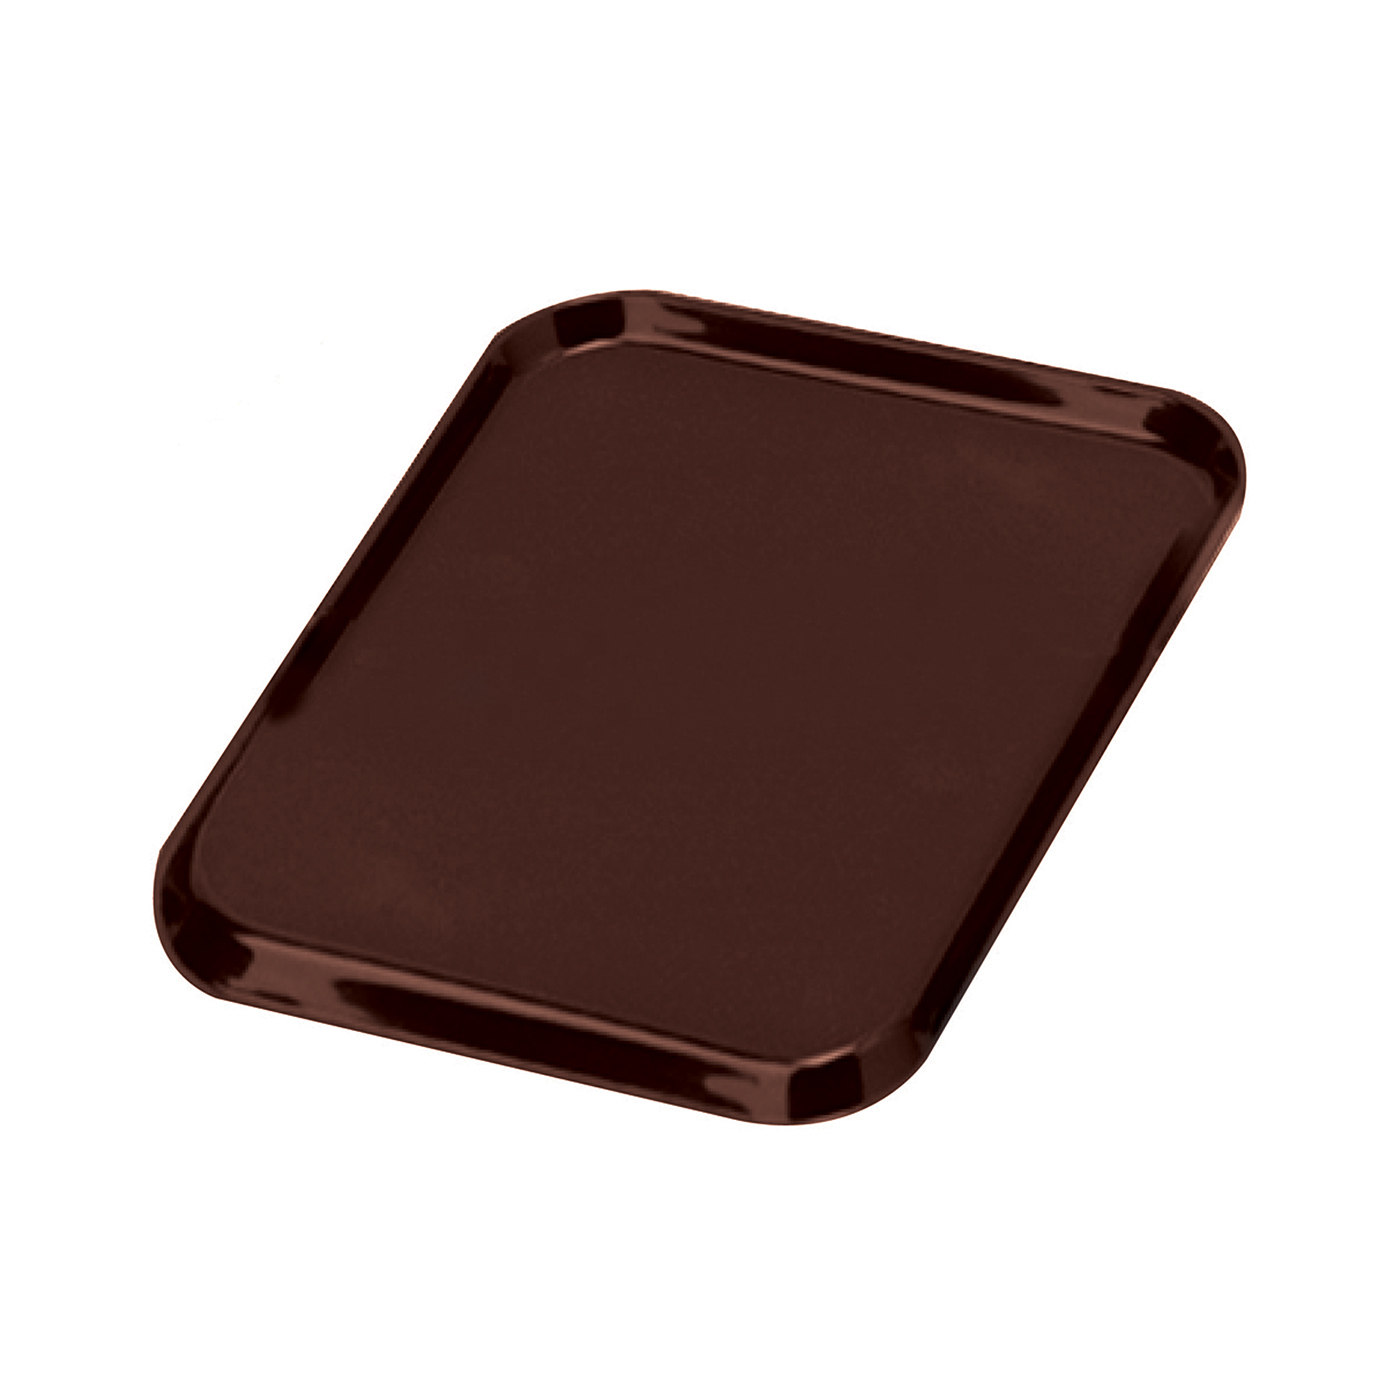 Trays Tray Non Slip Polypropylene Dishwasher Safe W390xD290mm Brown